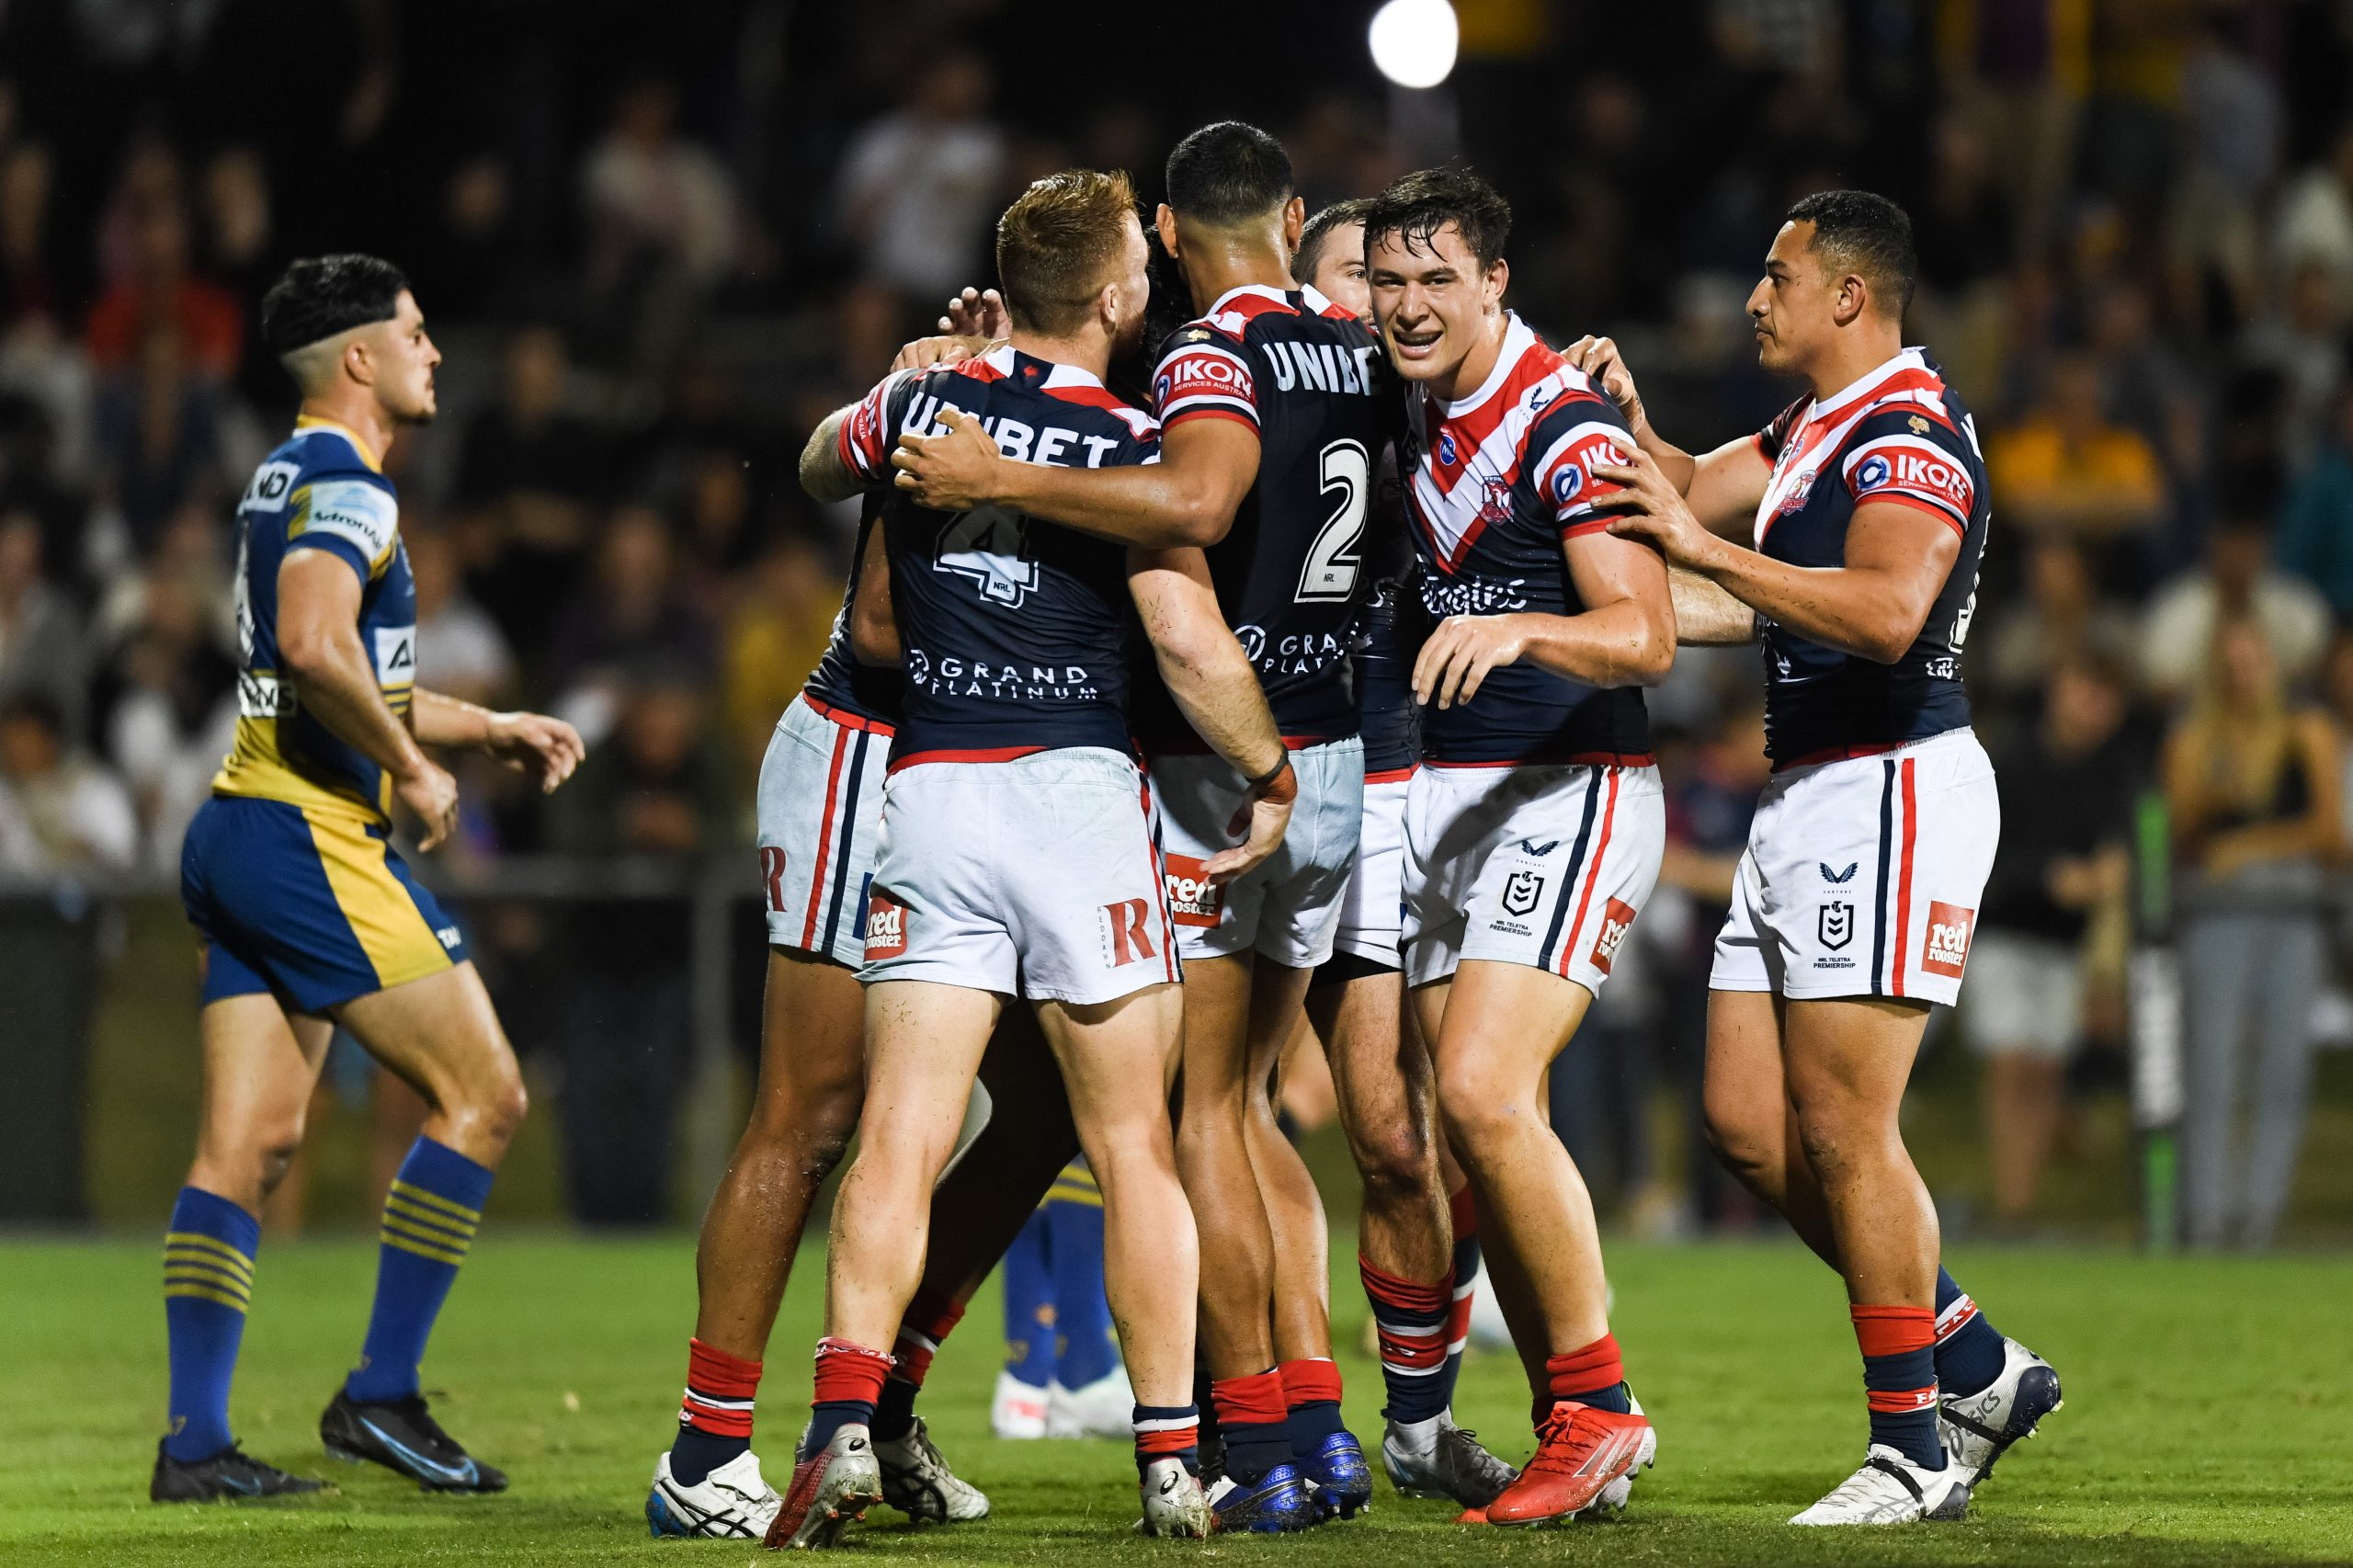 Walker leads from the front to help Roosters to convincing win over Eels